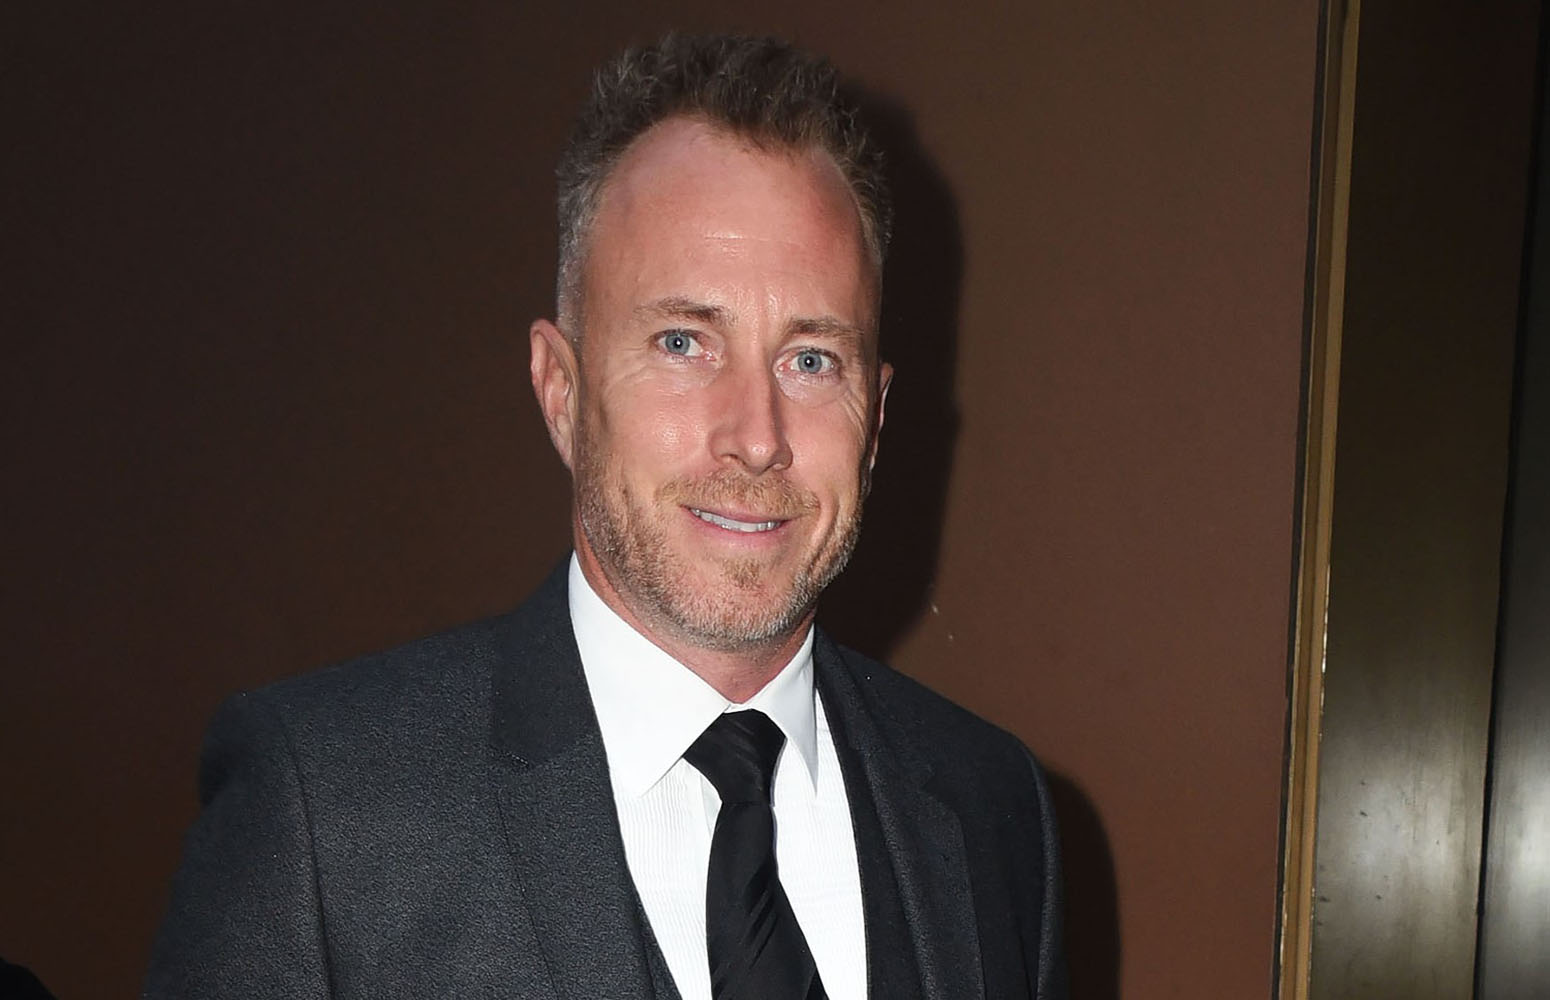 James Jordan reveals dad is in hospital after suffering another stroke